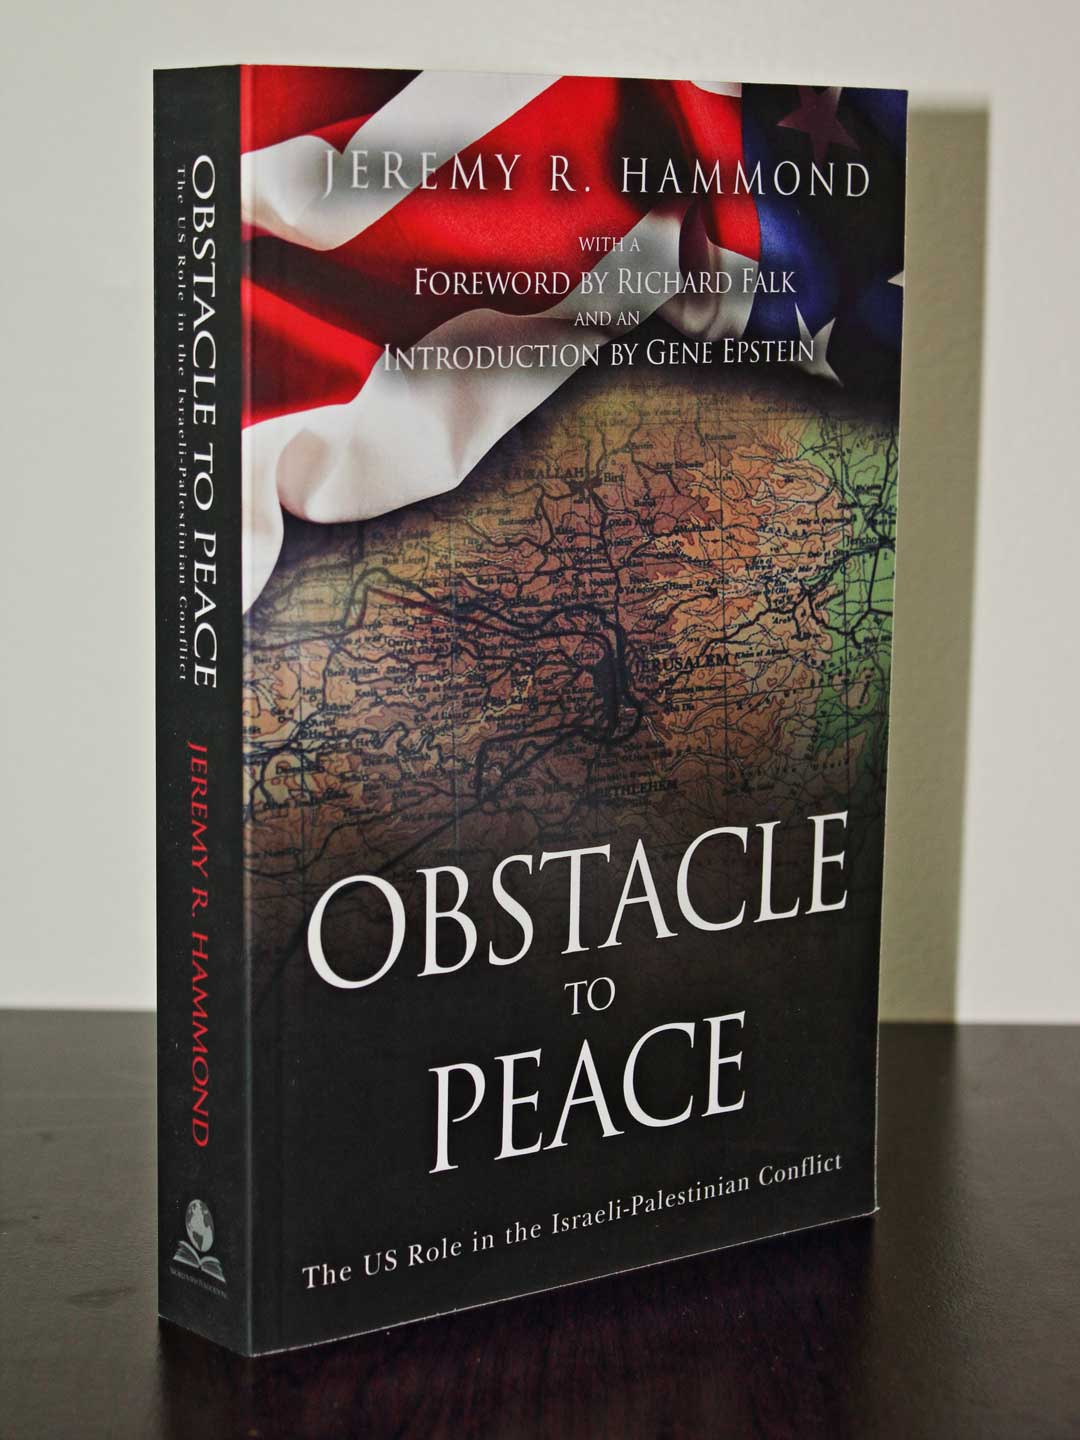 Obstacle to Peace front cover and spine